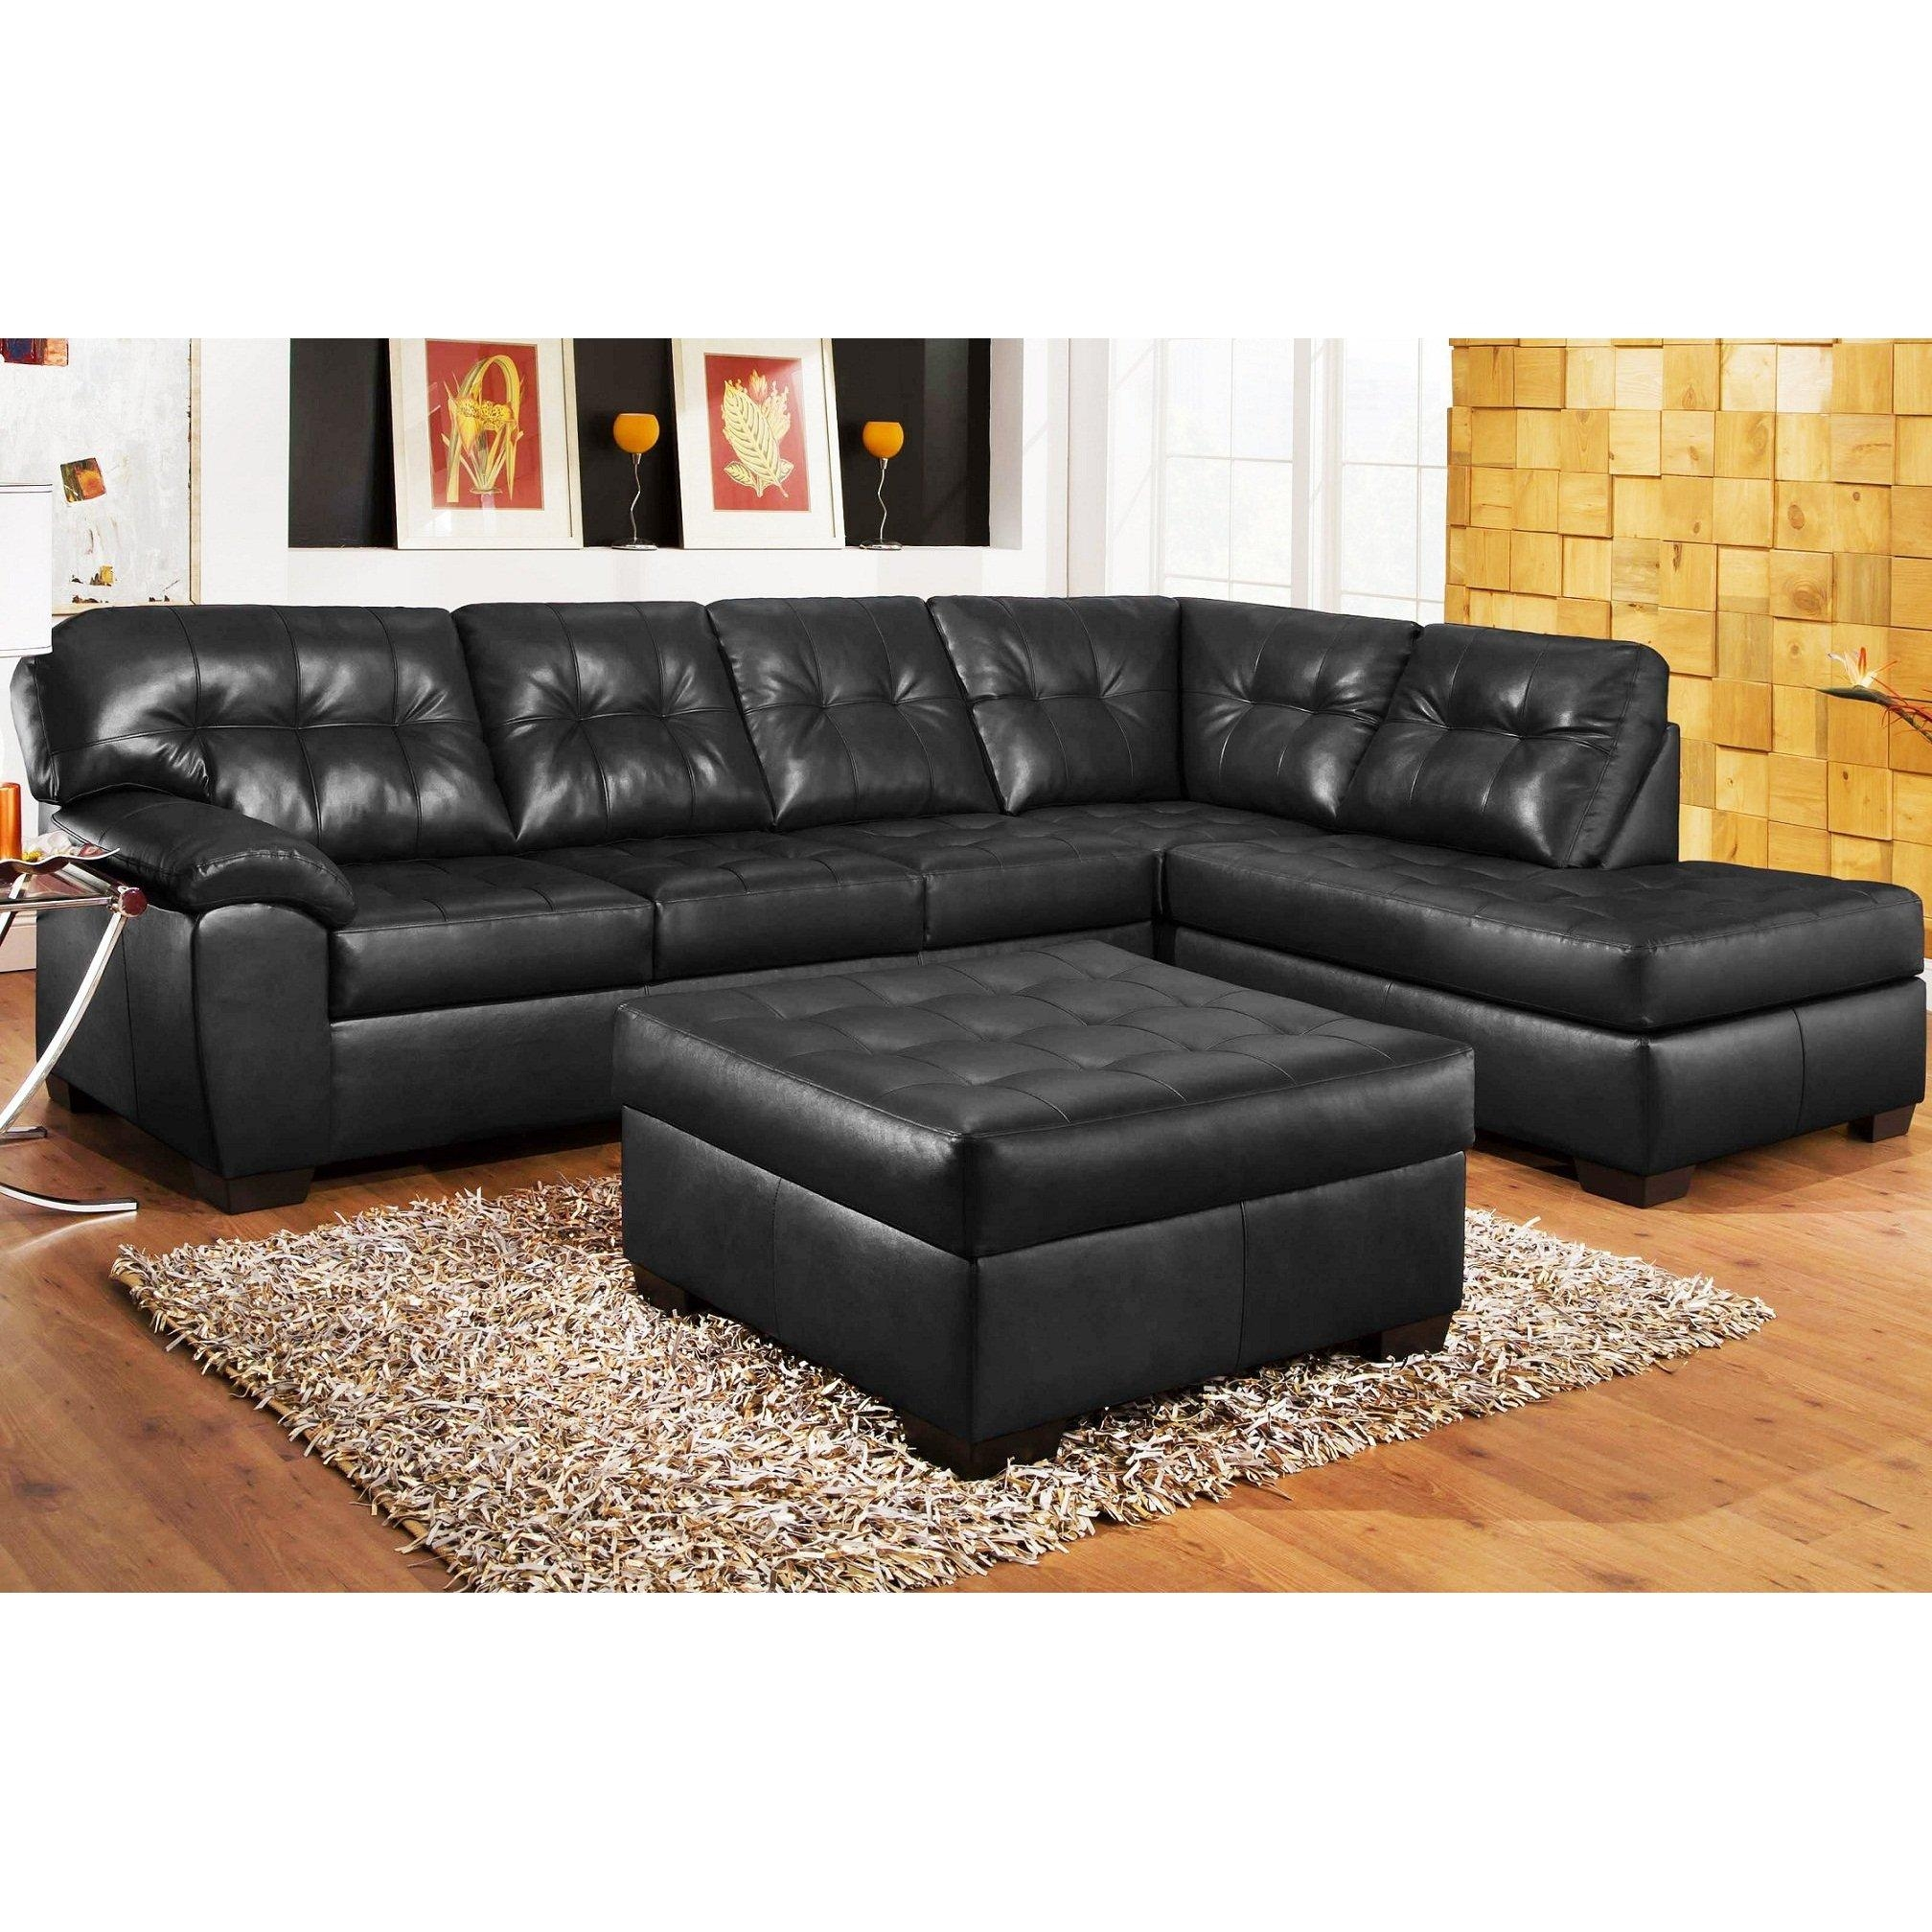 Sofa Set Sale In Dubai 21 Collection Of Black Leather Sectional Sleeper Sofas